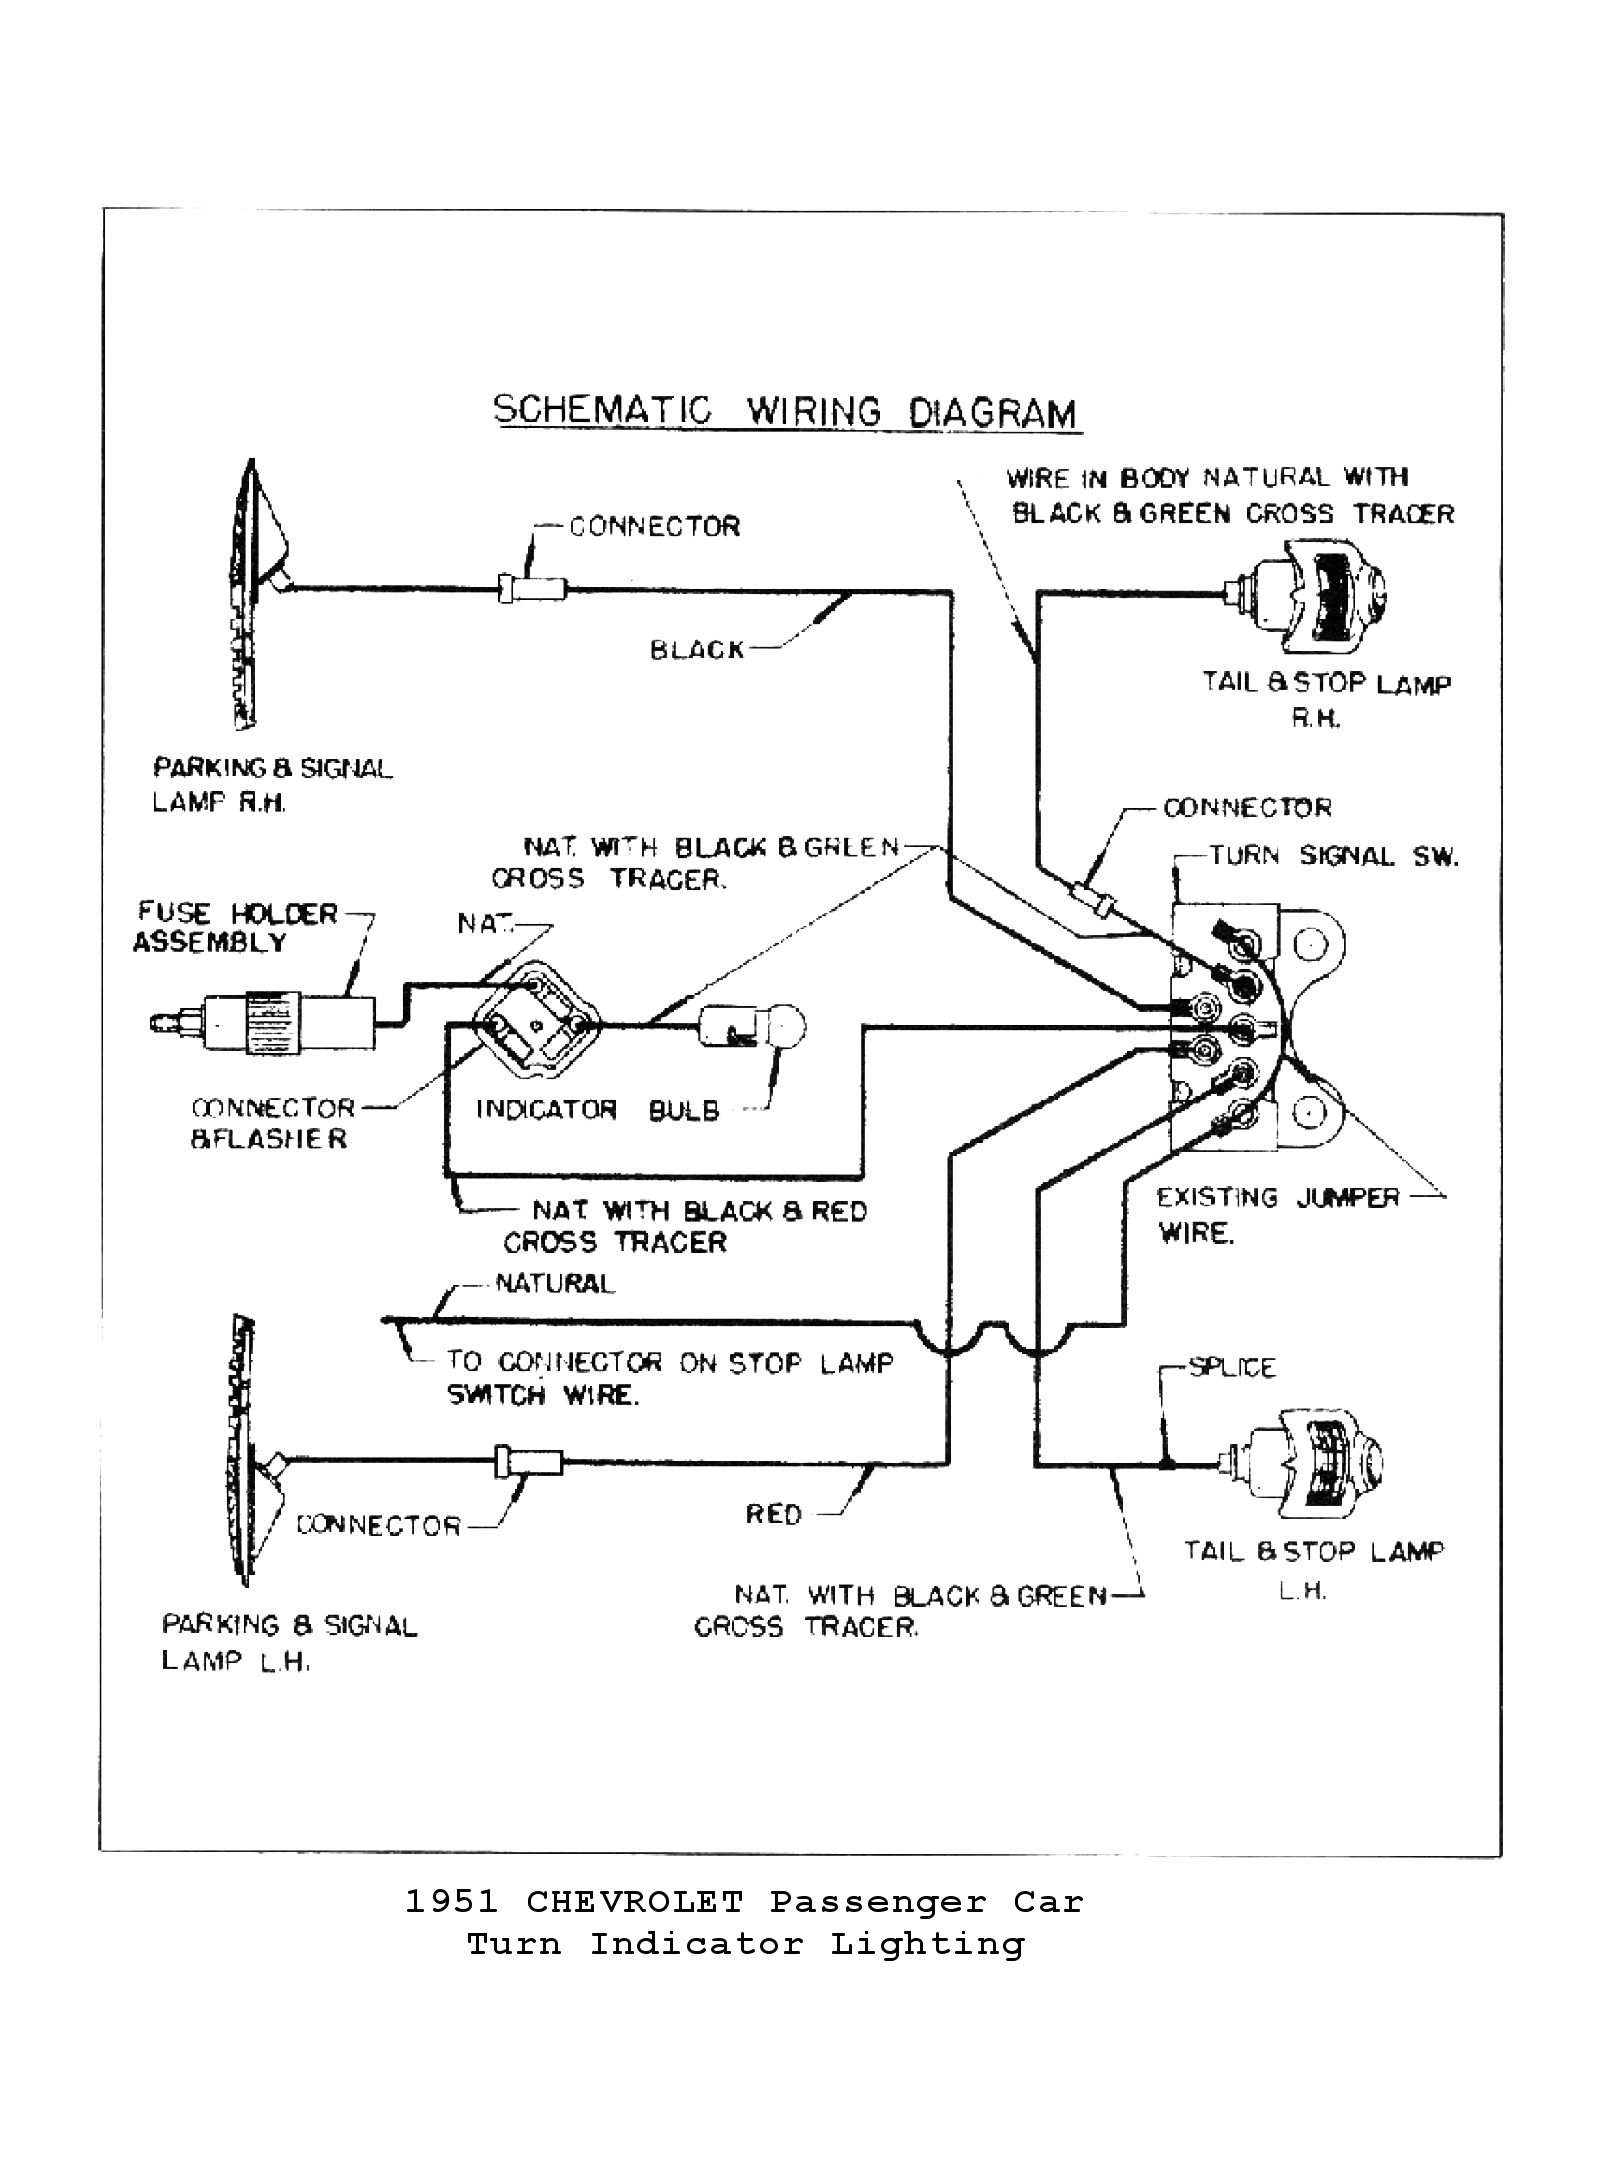 5152turnsignals 55 chevy heater diagram wiring schematic wiring diagram simonand 66 Chevy Headlight Switch Wiring Diagram at pacquiaovsvargaslive.co